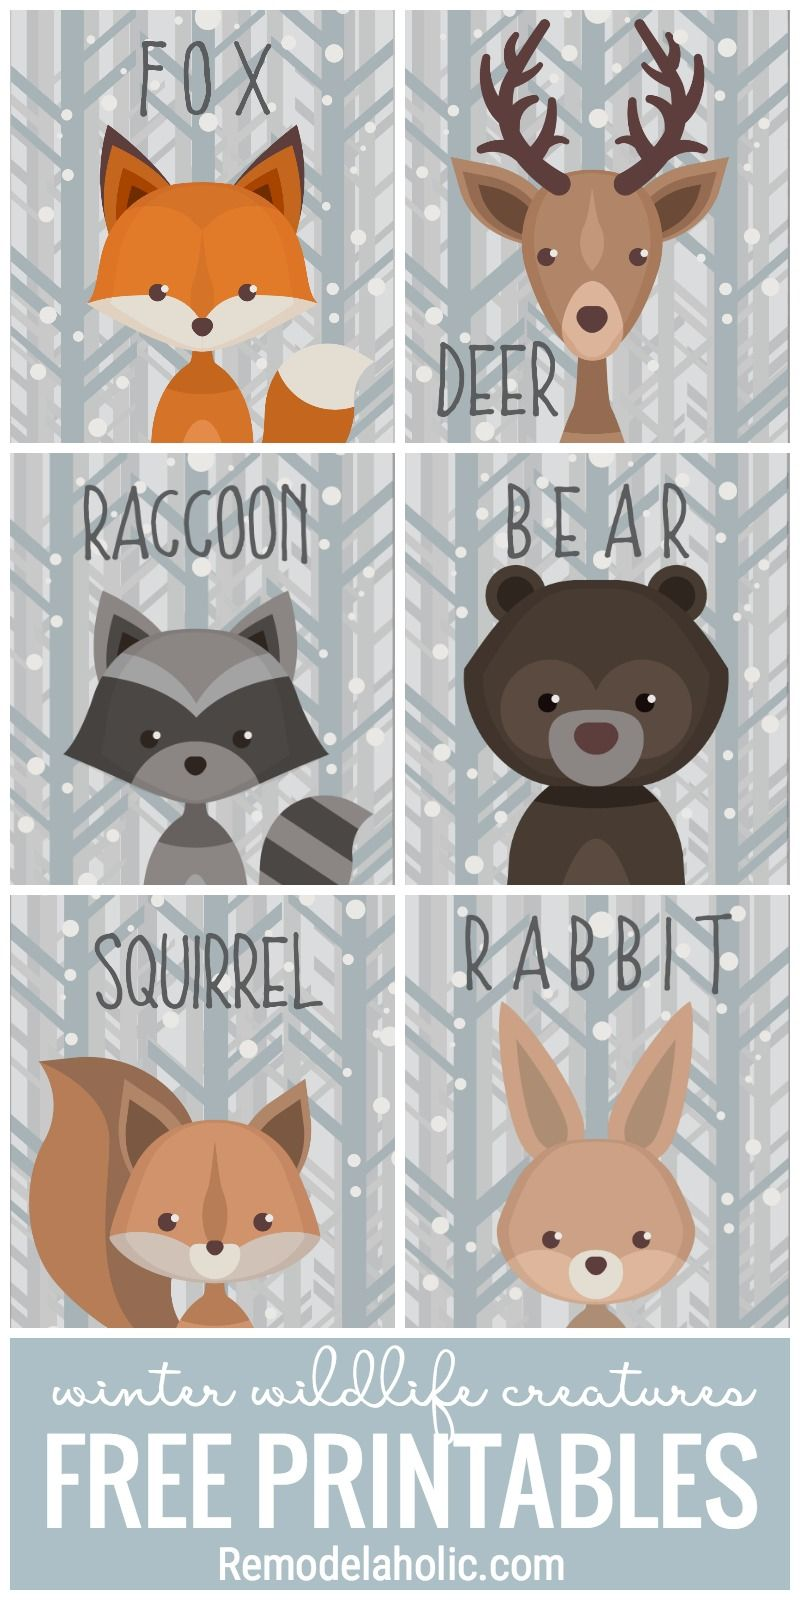 image about Free Printable Woodland Animal Templates called This no cost preset of printable wintertime woodland creature artwork is